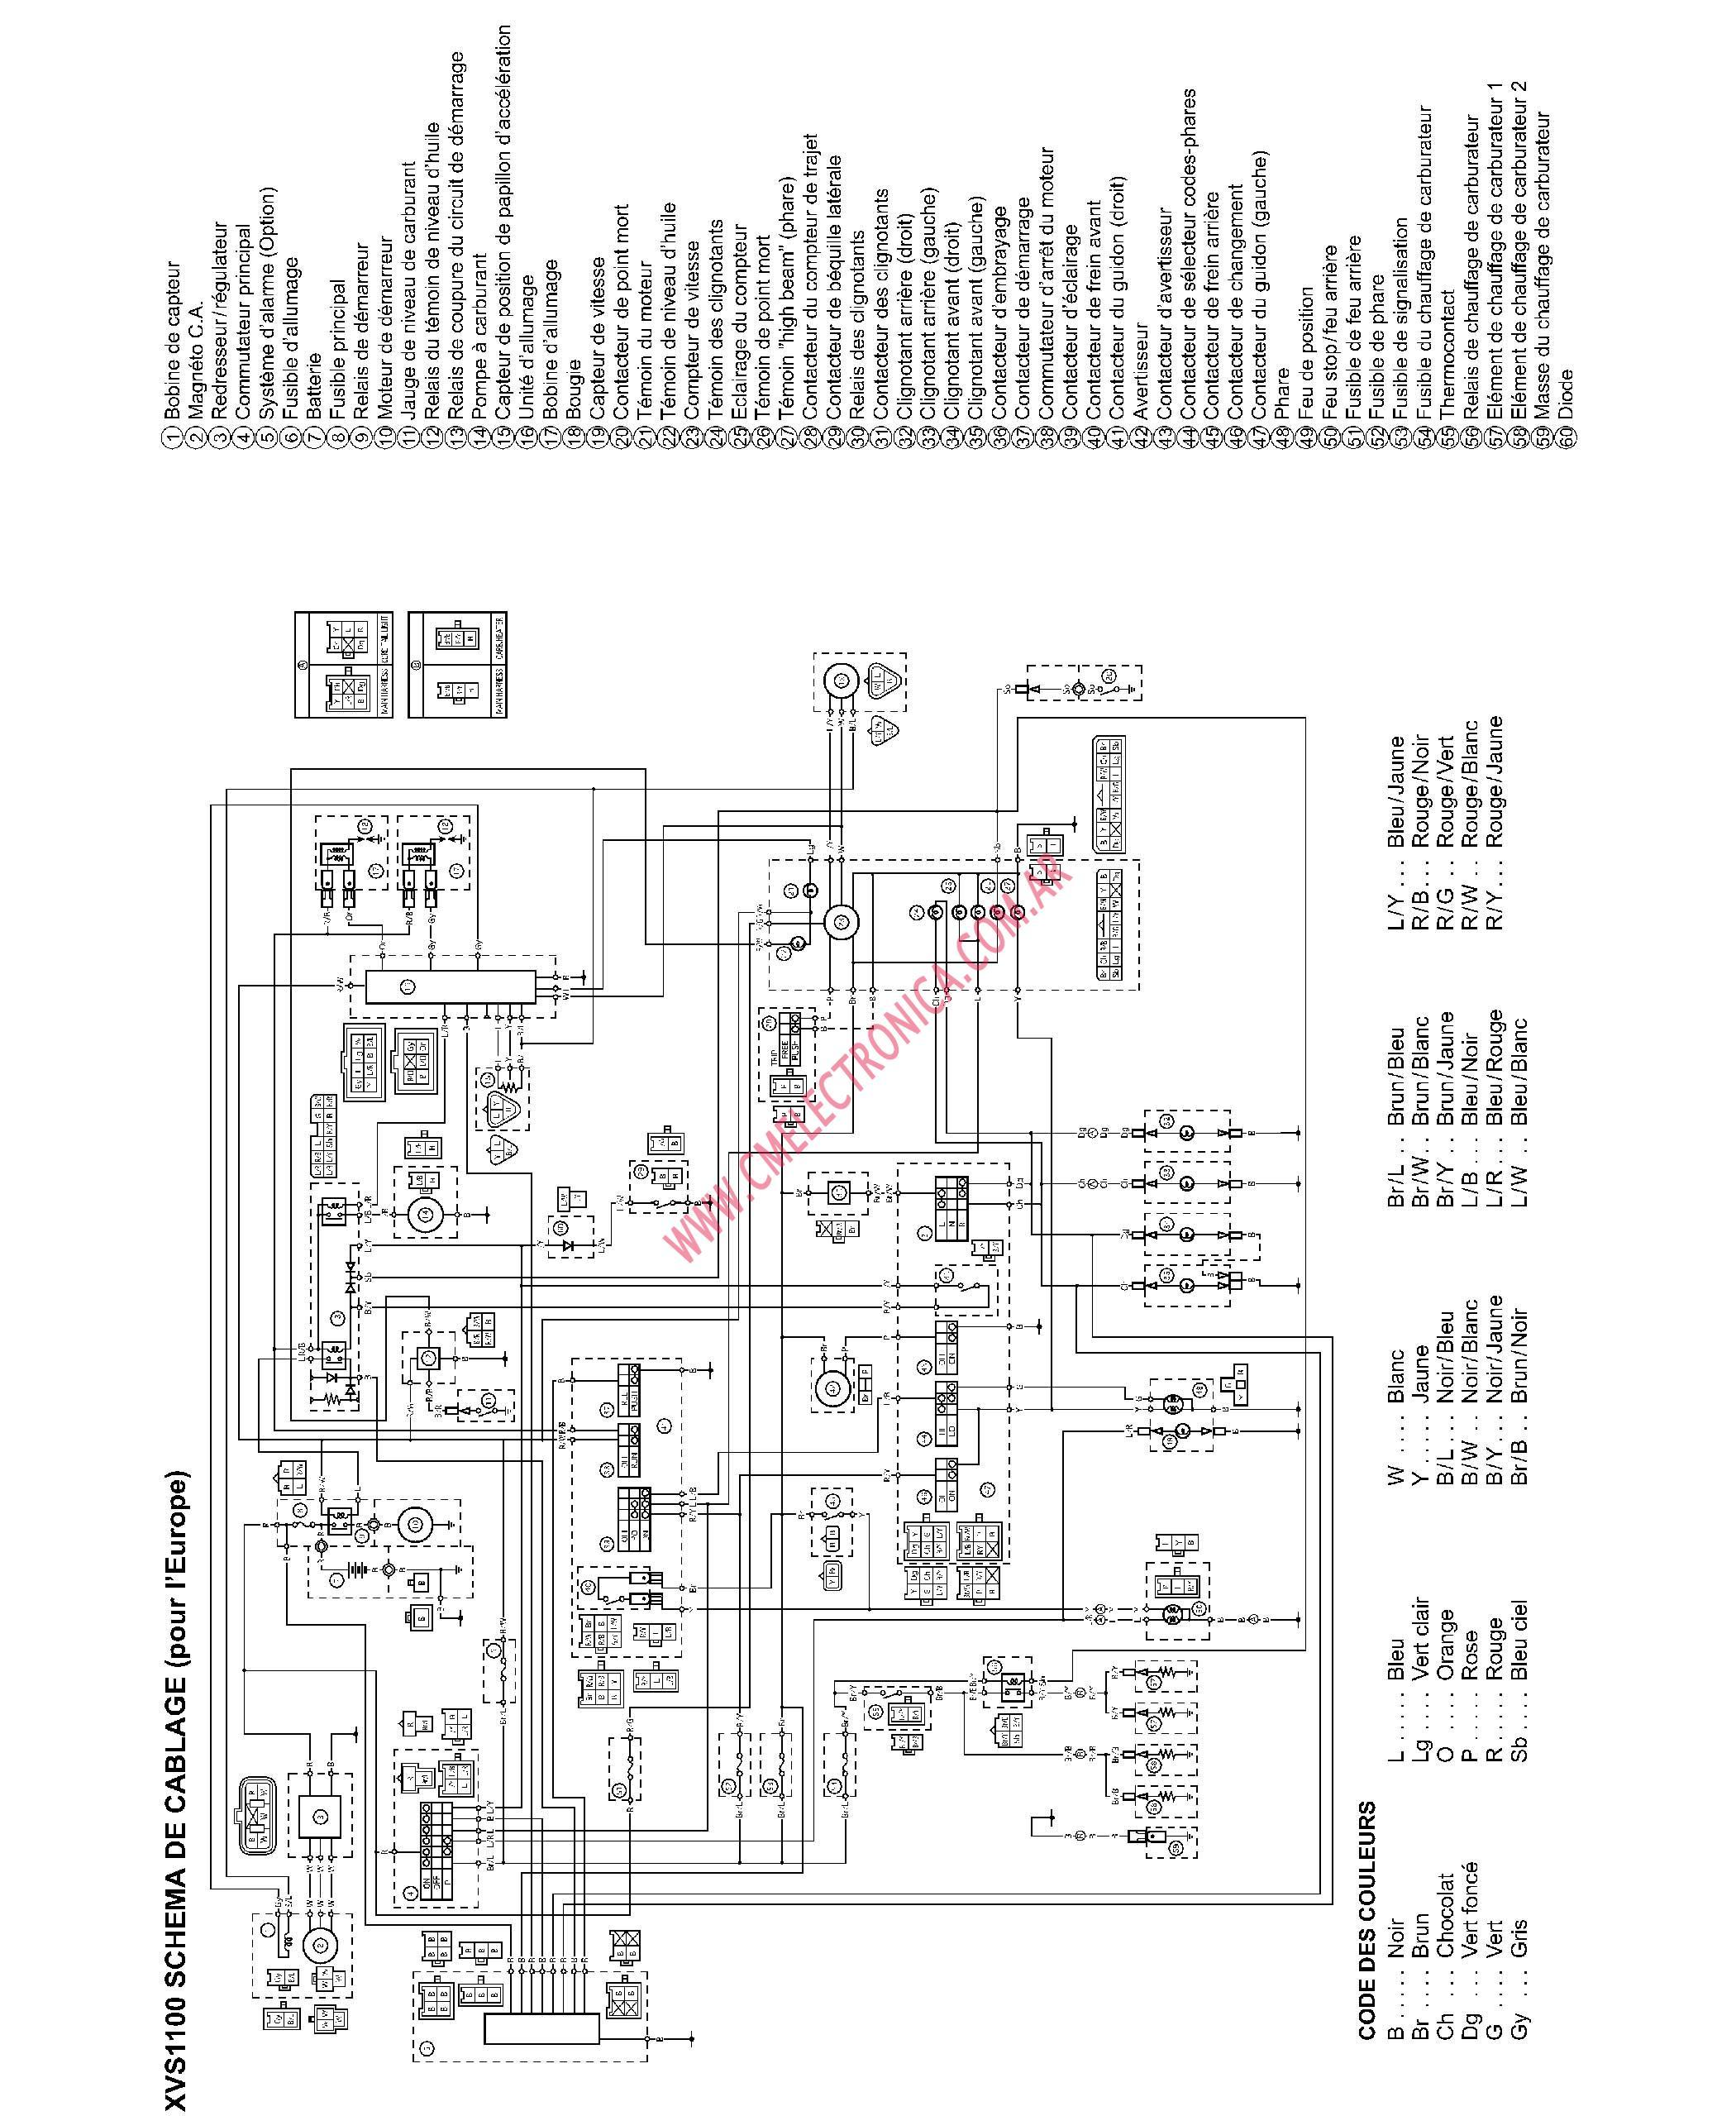 [DIAGRAM_34OR]  AF_4319] Goldwing Gl1800 Wiring Diagram Further Honda Goldwing Wiring  Diagram Schematic Wiring | 2015 Gl1800 Wiring Diagram |  | Tobiq Phil Pical Tixat Mohammedshrine Librar Wiring 101